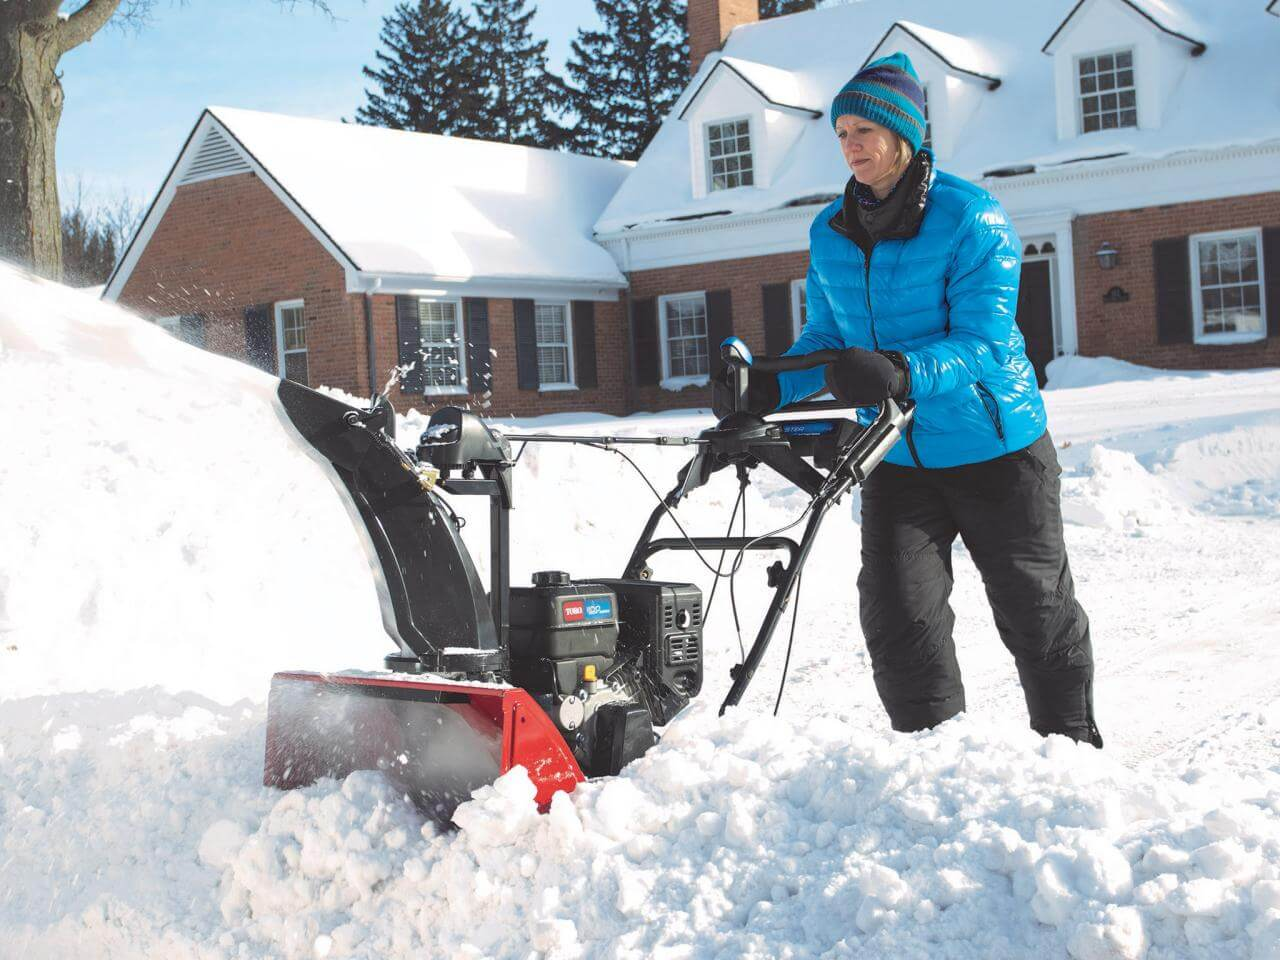 Snow removal is tough business